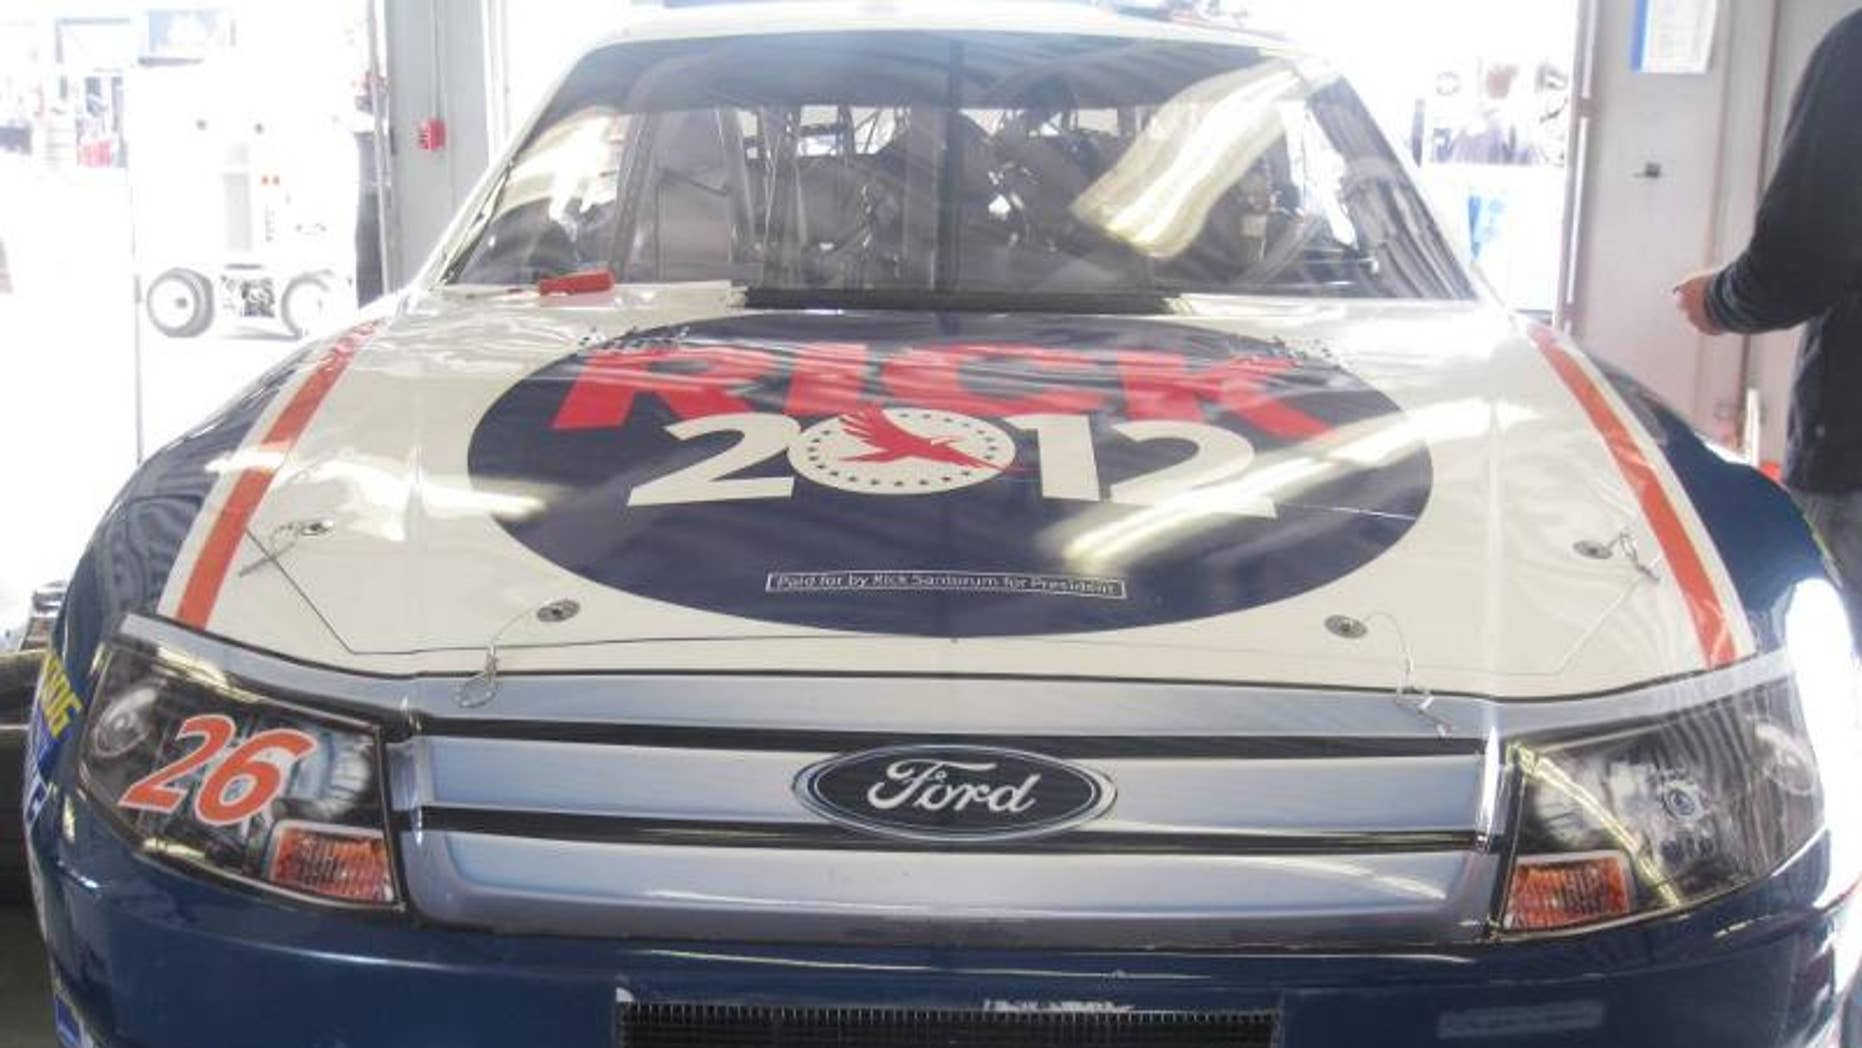 Front Row Motorsports' No. 26 Ford Fusion driven by Tony Raines was sponsored in Sunday's Daytona 500 by presidential candidate Rick Santorum.